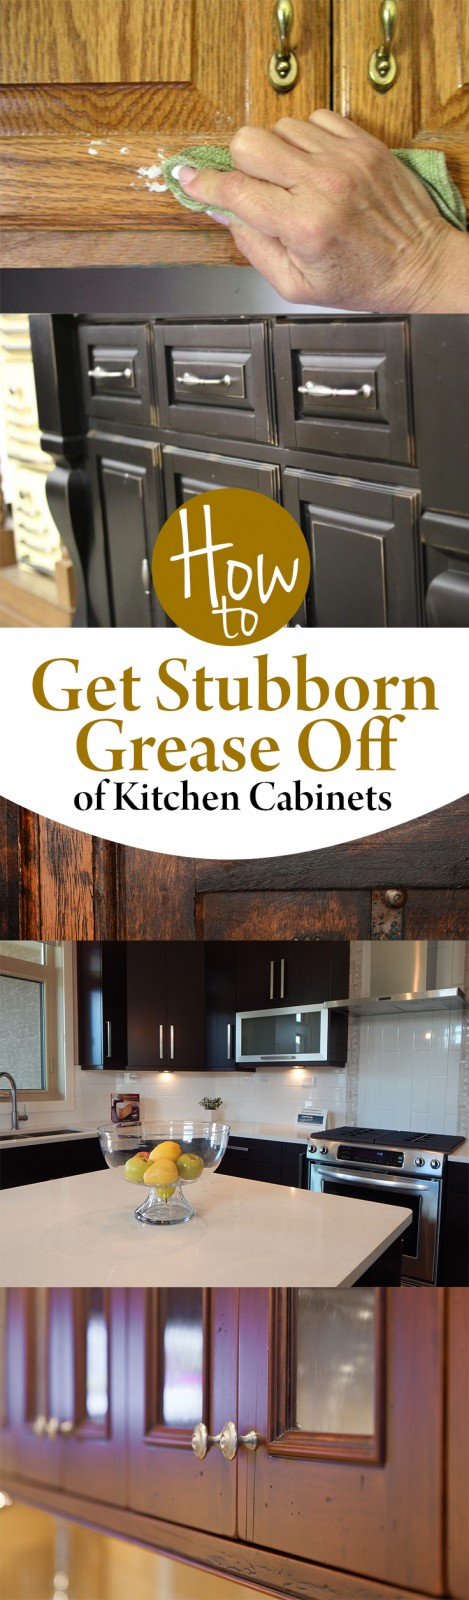 How to Get Stubborn Grease Off of Kitchen Cabinets in 2020 ...